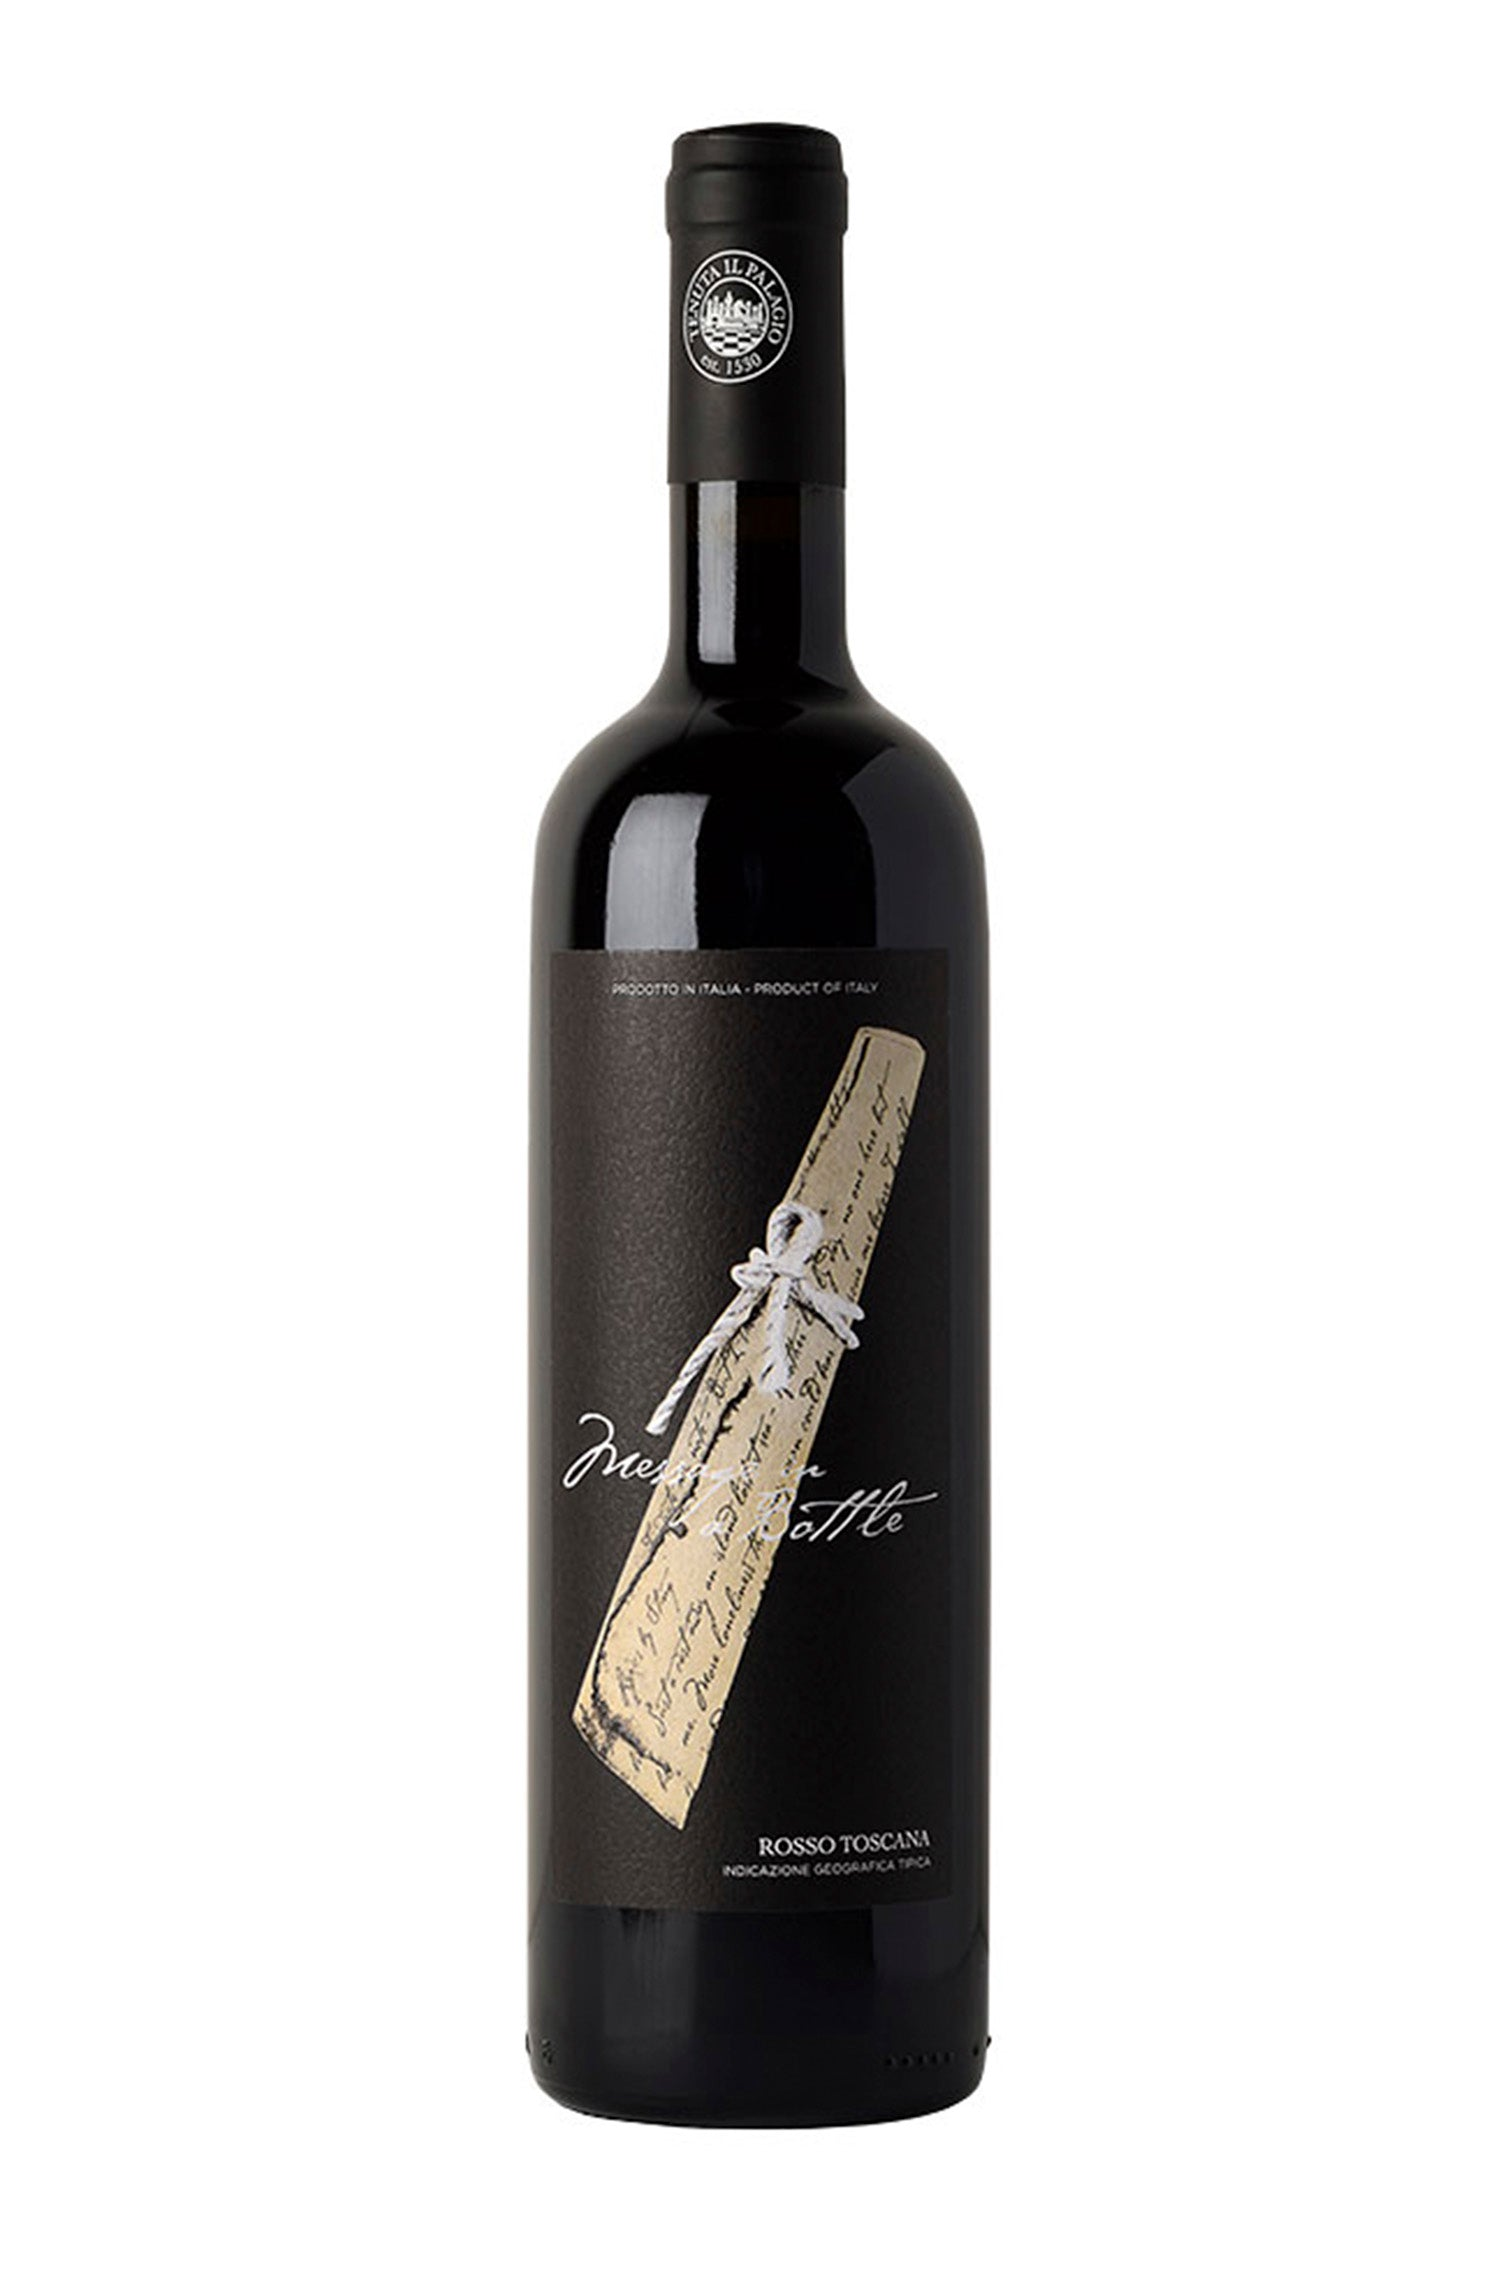 Message in a bottle, Red, Organic, Sangiovese, IGT Tuscany, 13%